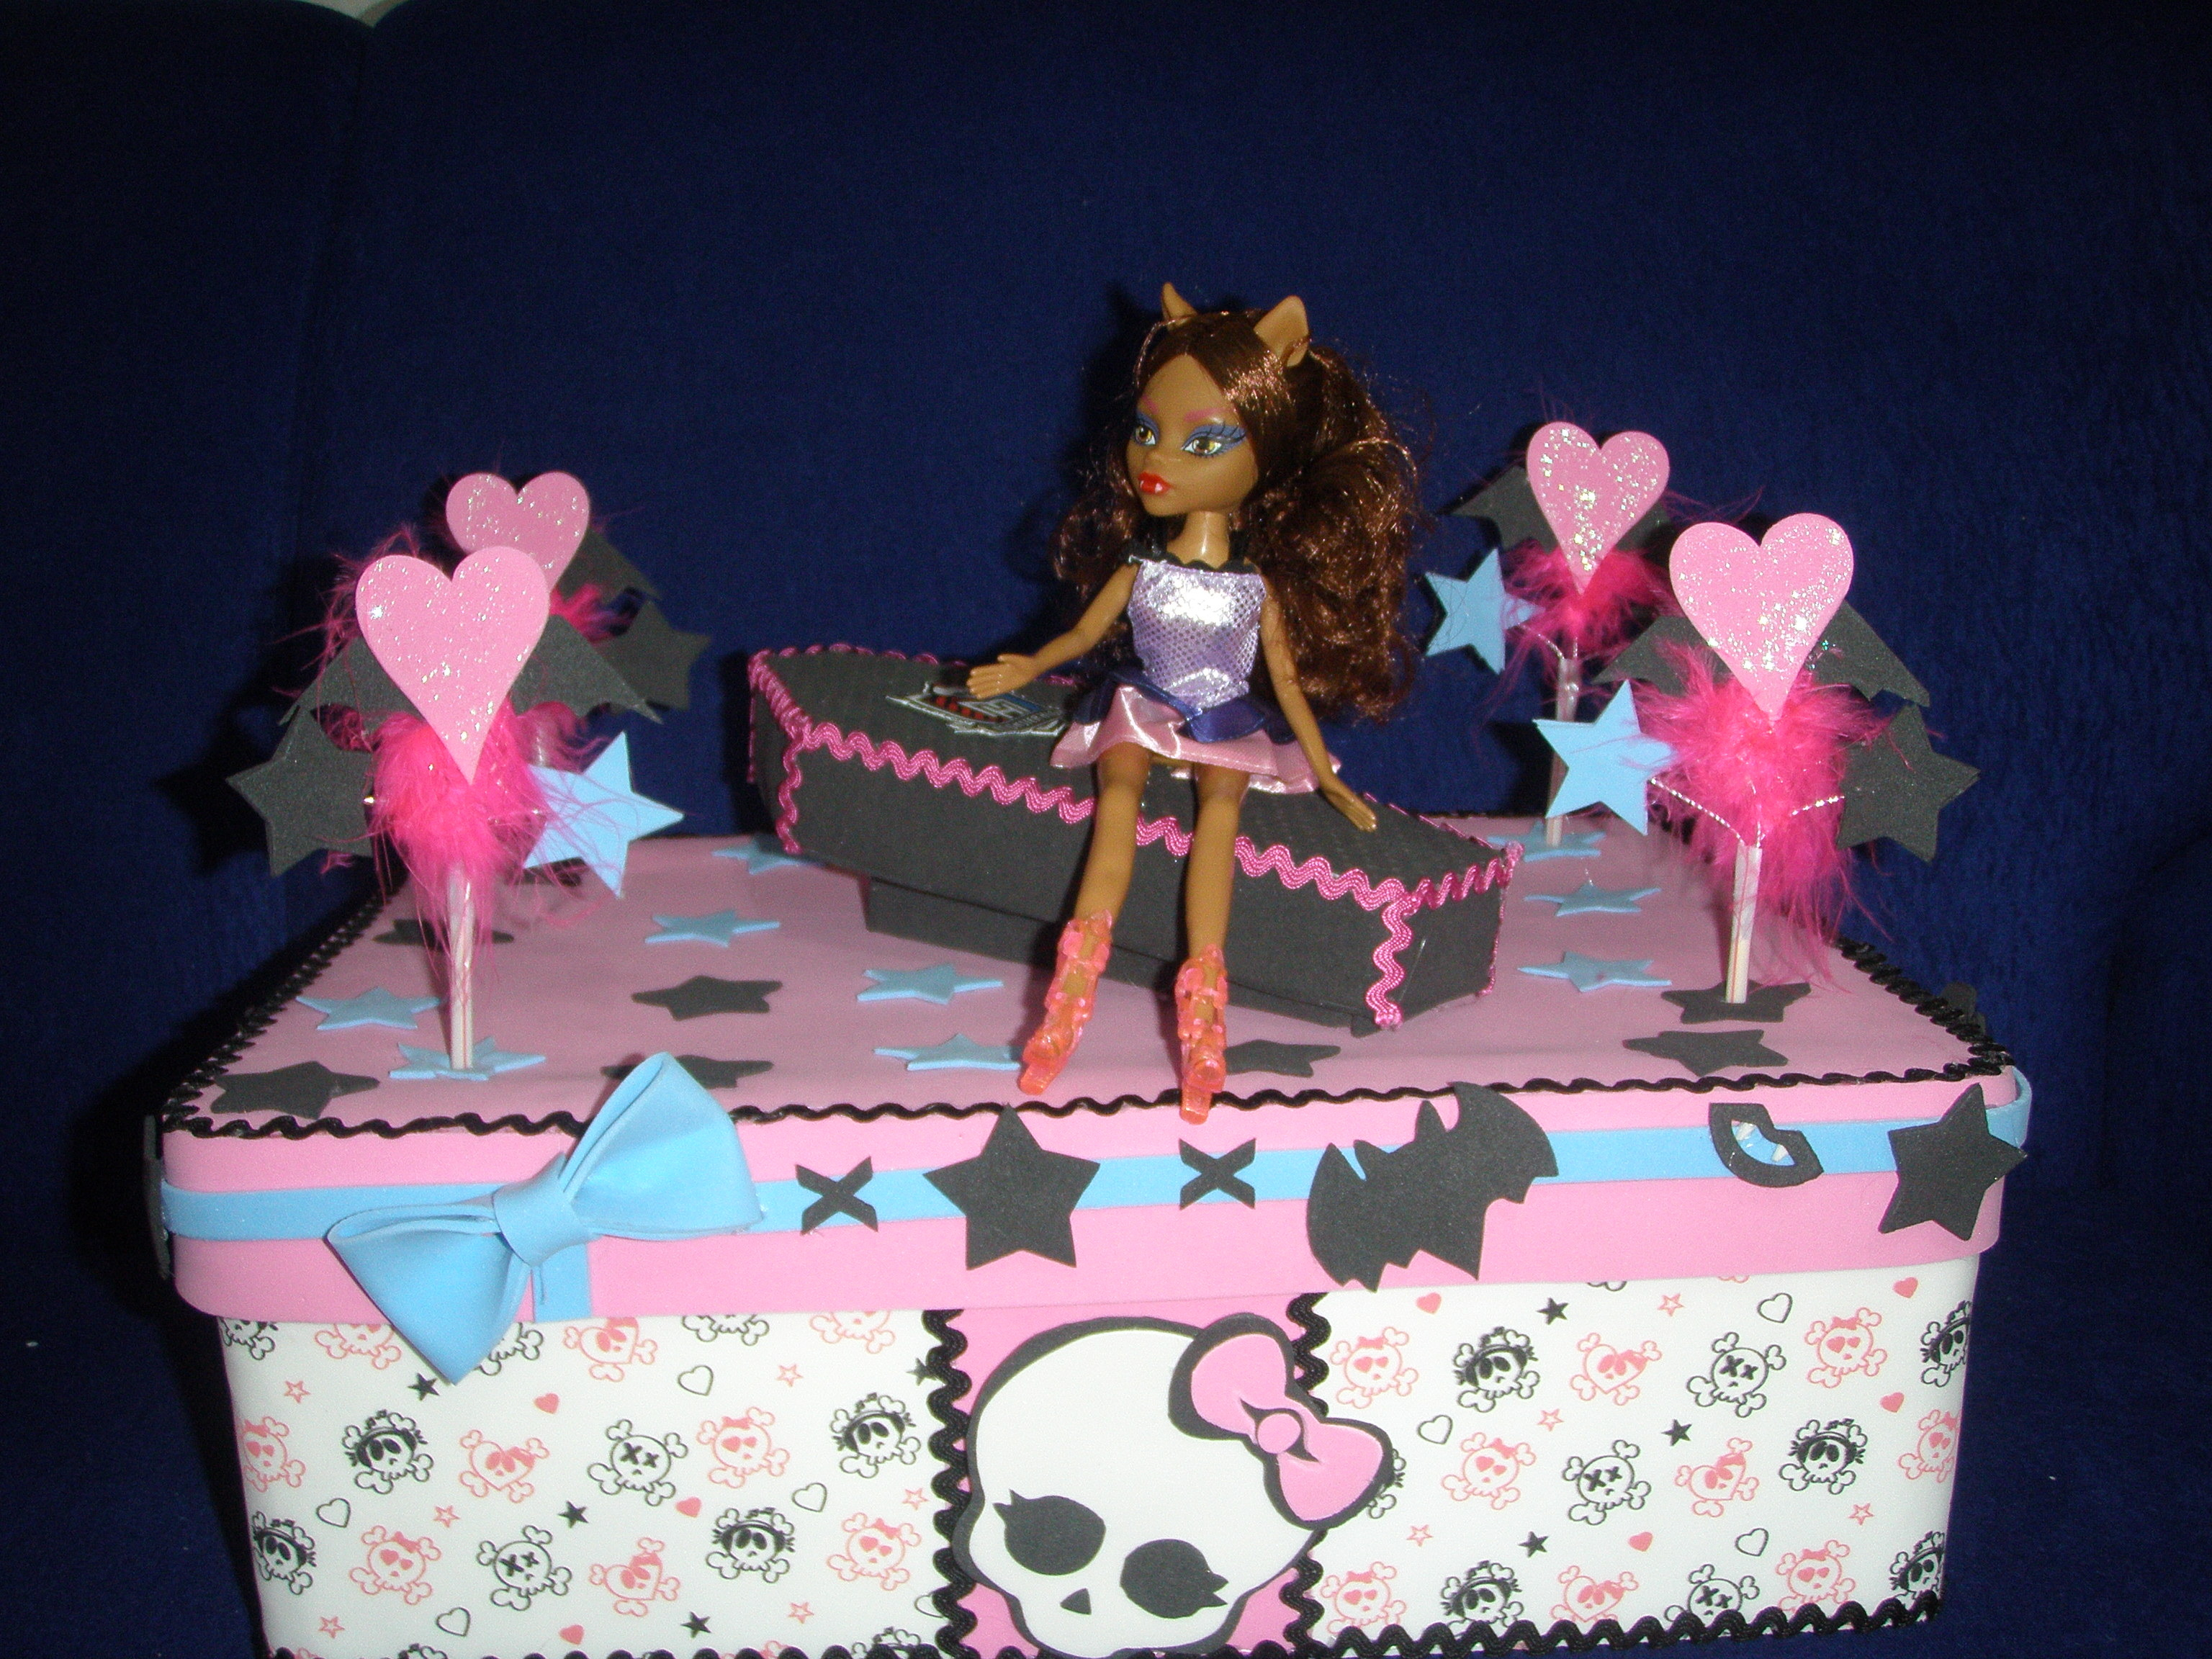 Bolo Monster High Caixa Bolo Monster High Caixa Bolo Monster High